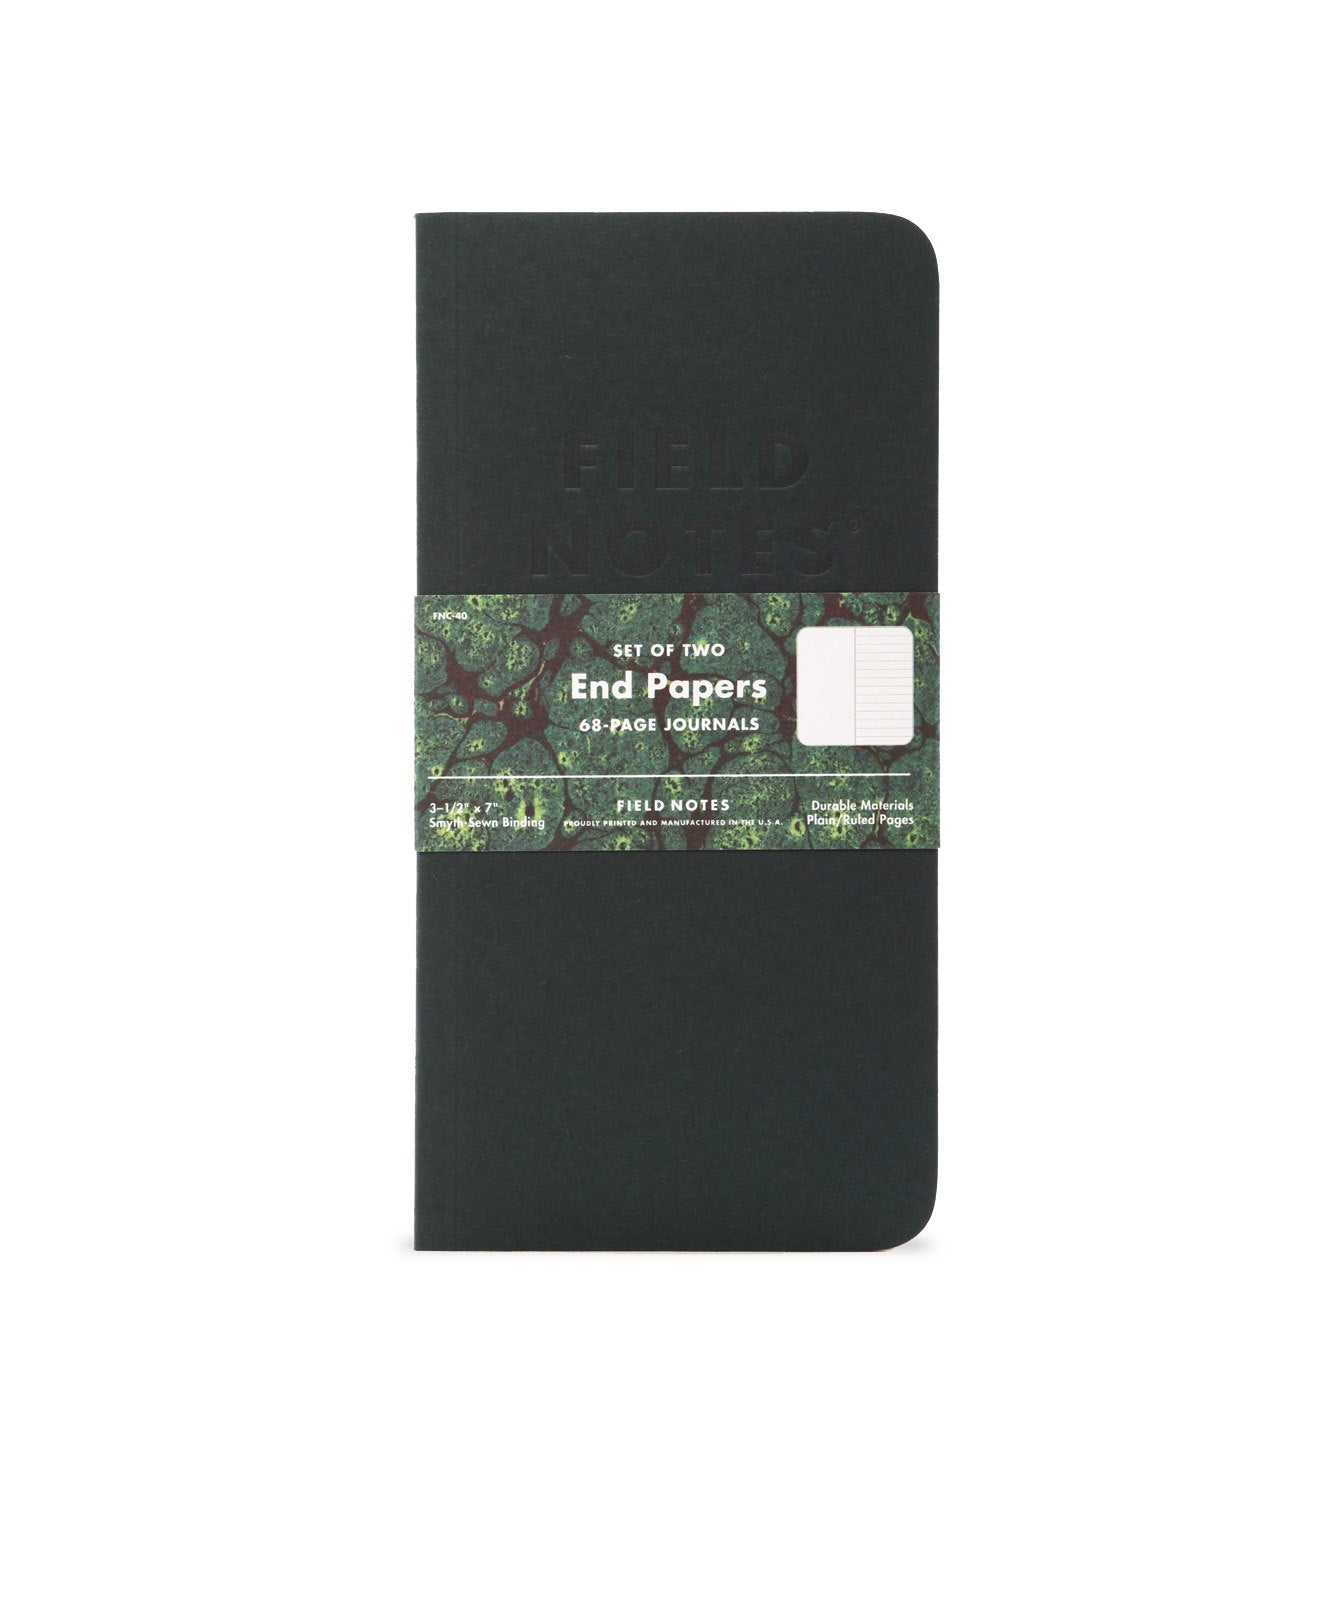 Field Notes End Papers Notebook - Set of 2